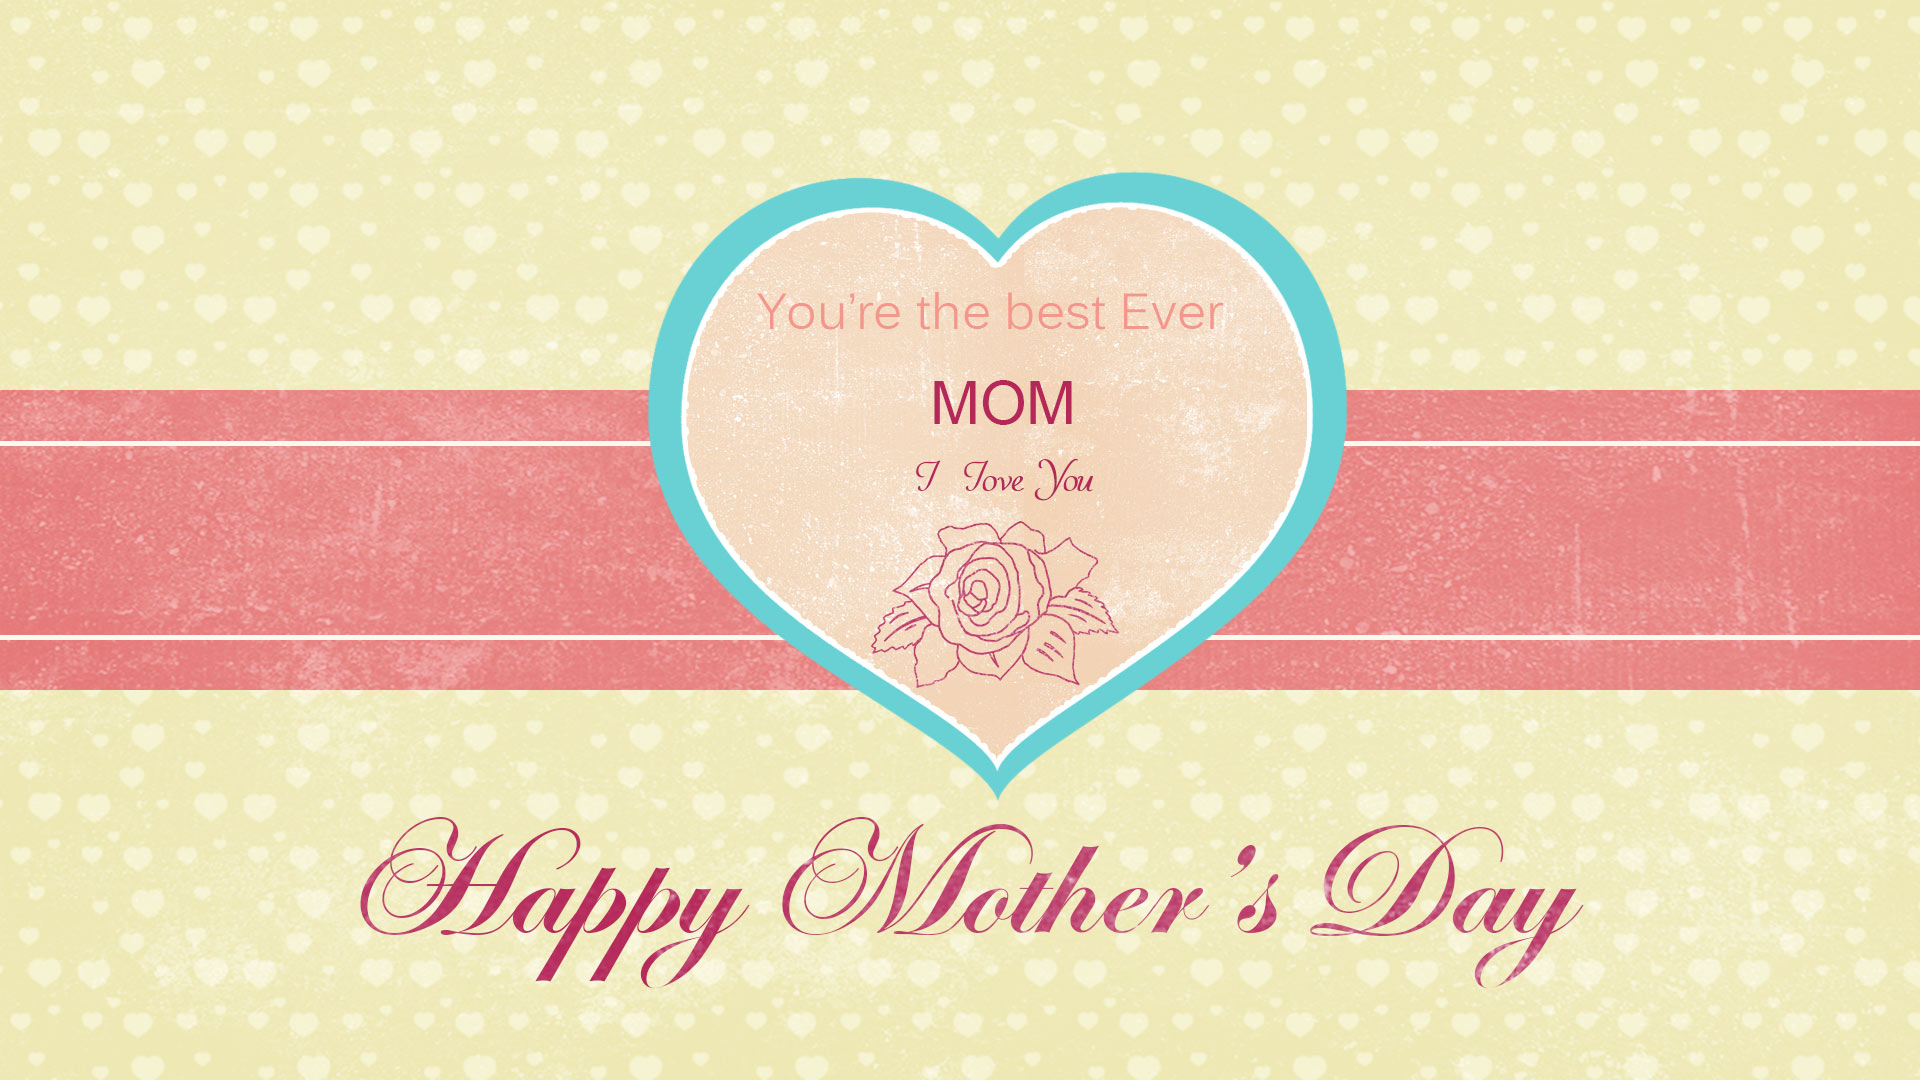 Happy Moder's Day Template In After Effects, Pattern for ...